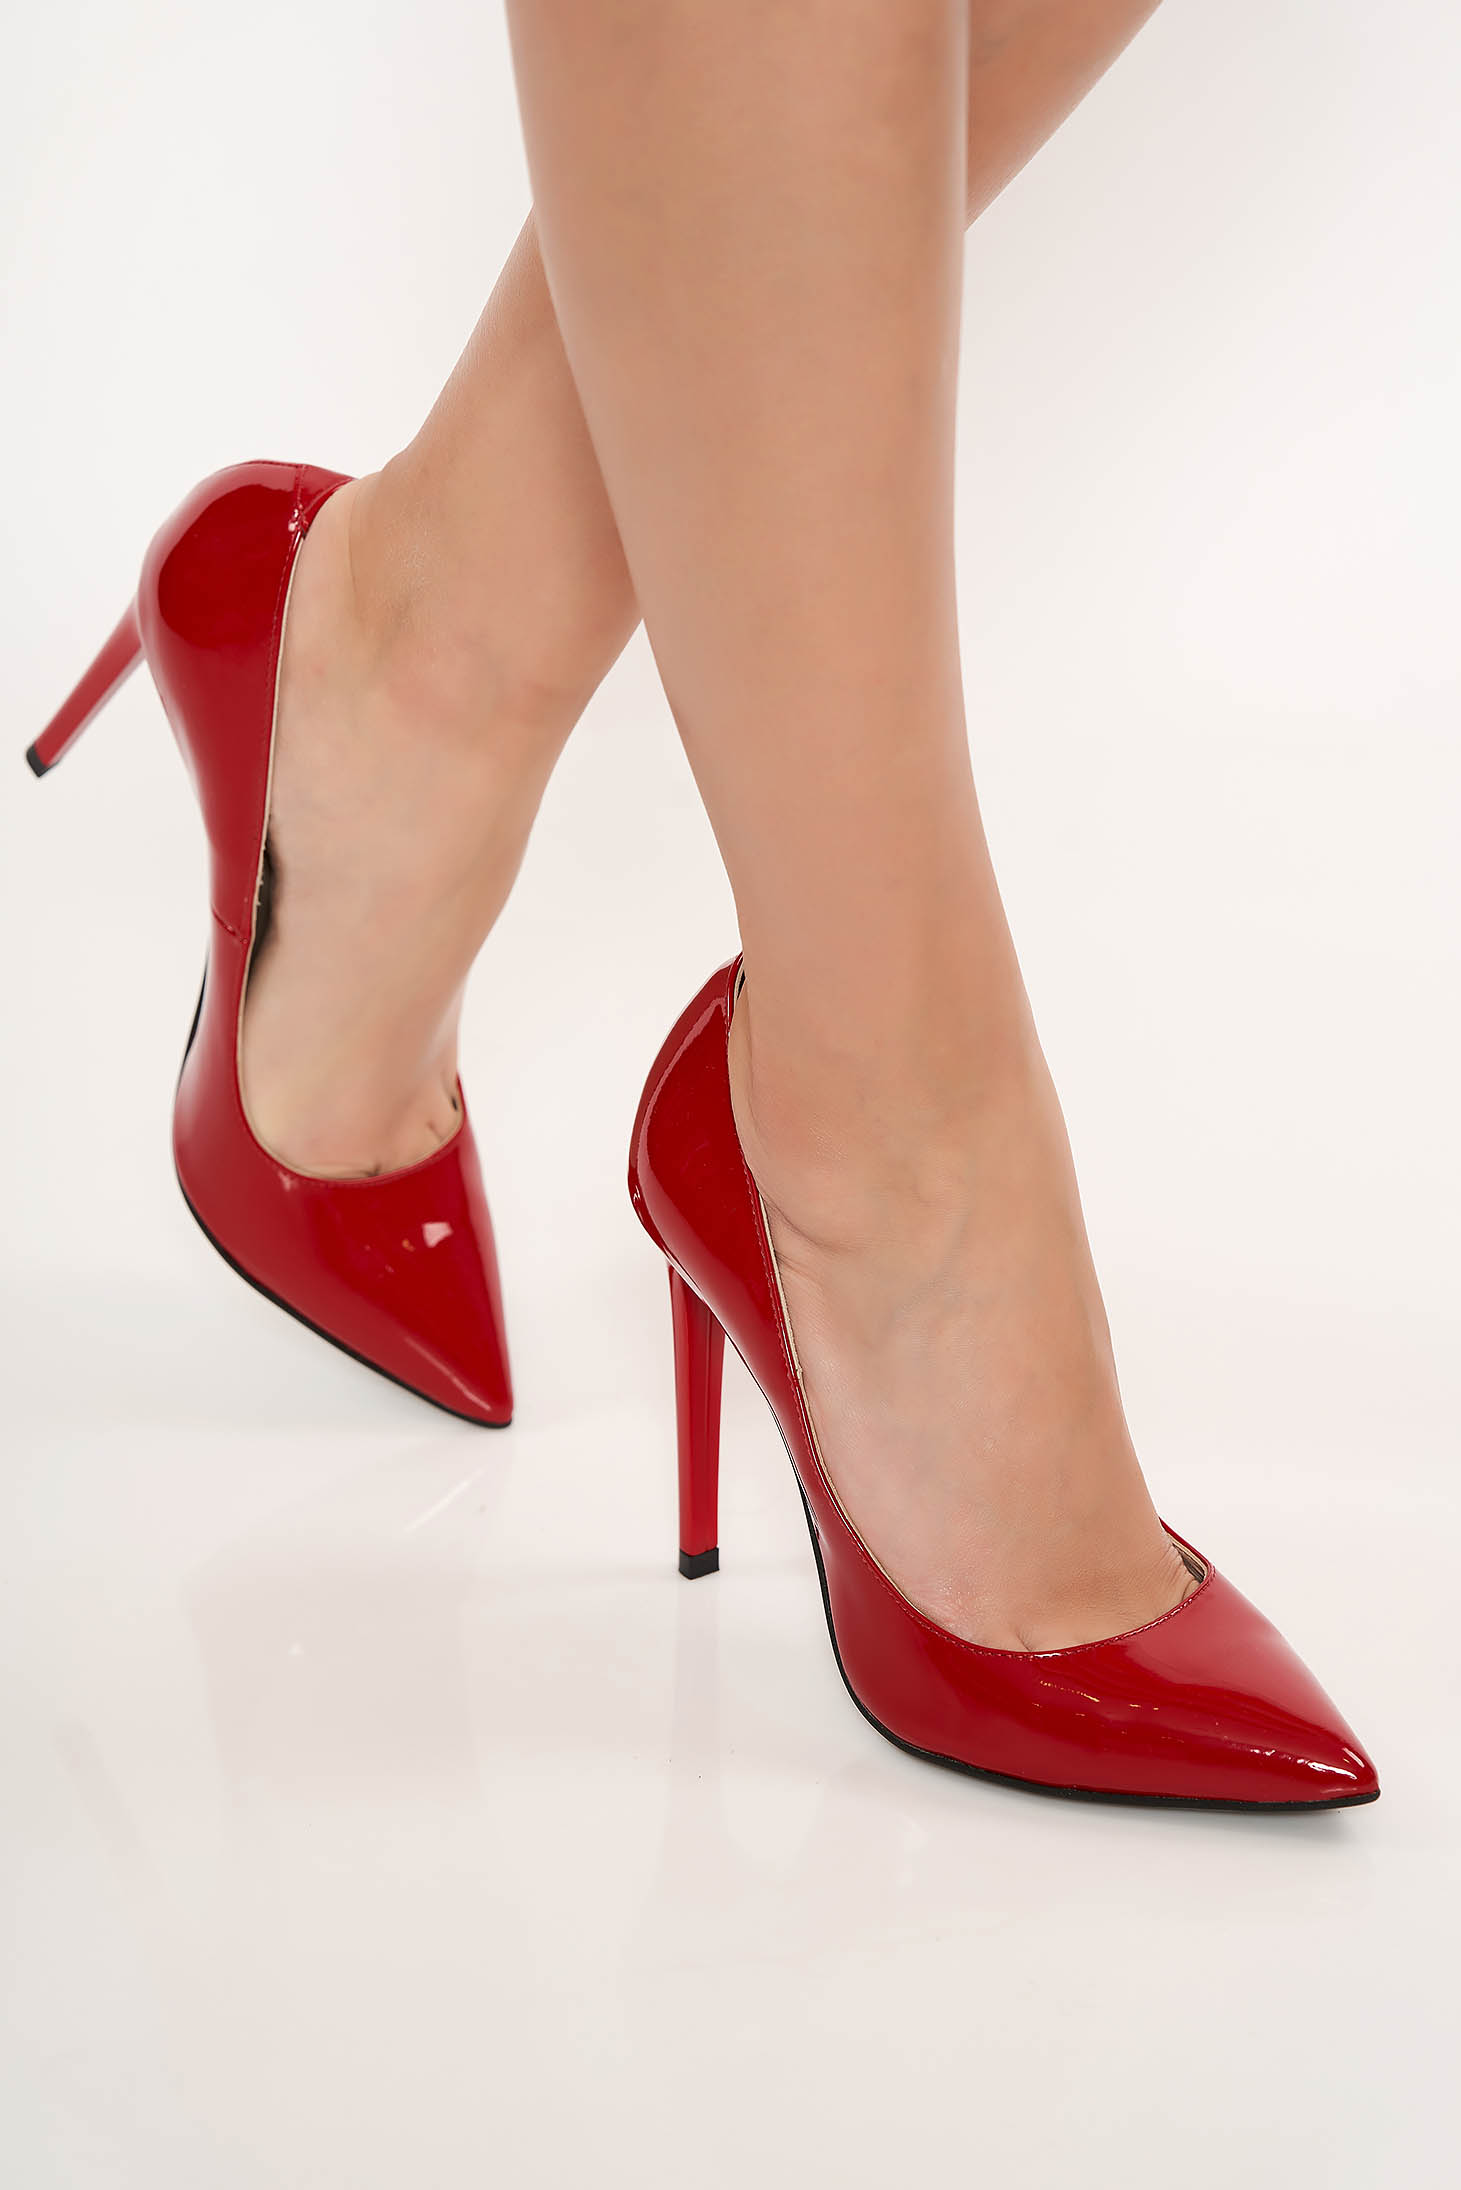 Red stiletto heels